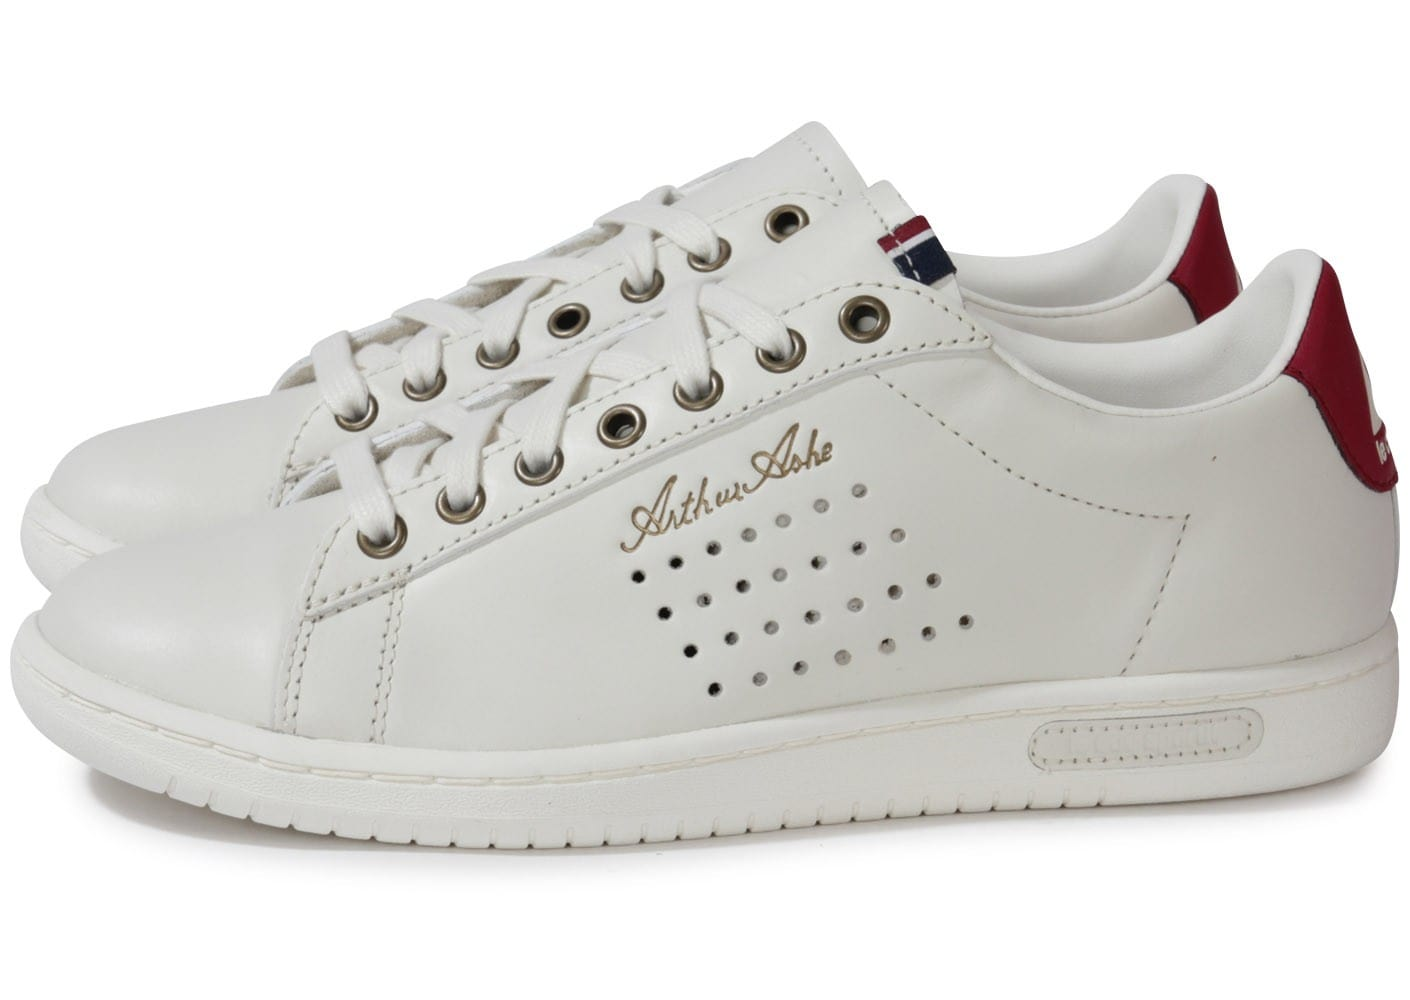 le coq sportif arthur ashe int low lea ruby chaussures chaussures chausport. Black Bedroom Furniture Sets. Home Design Ideas